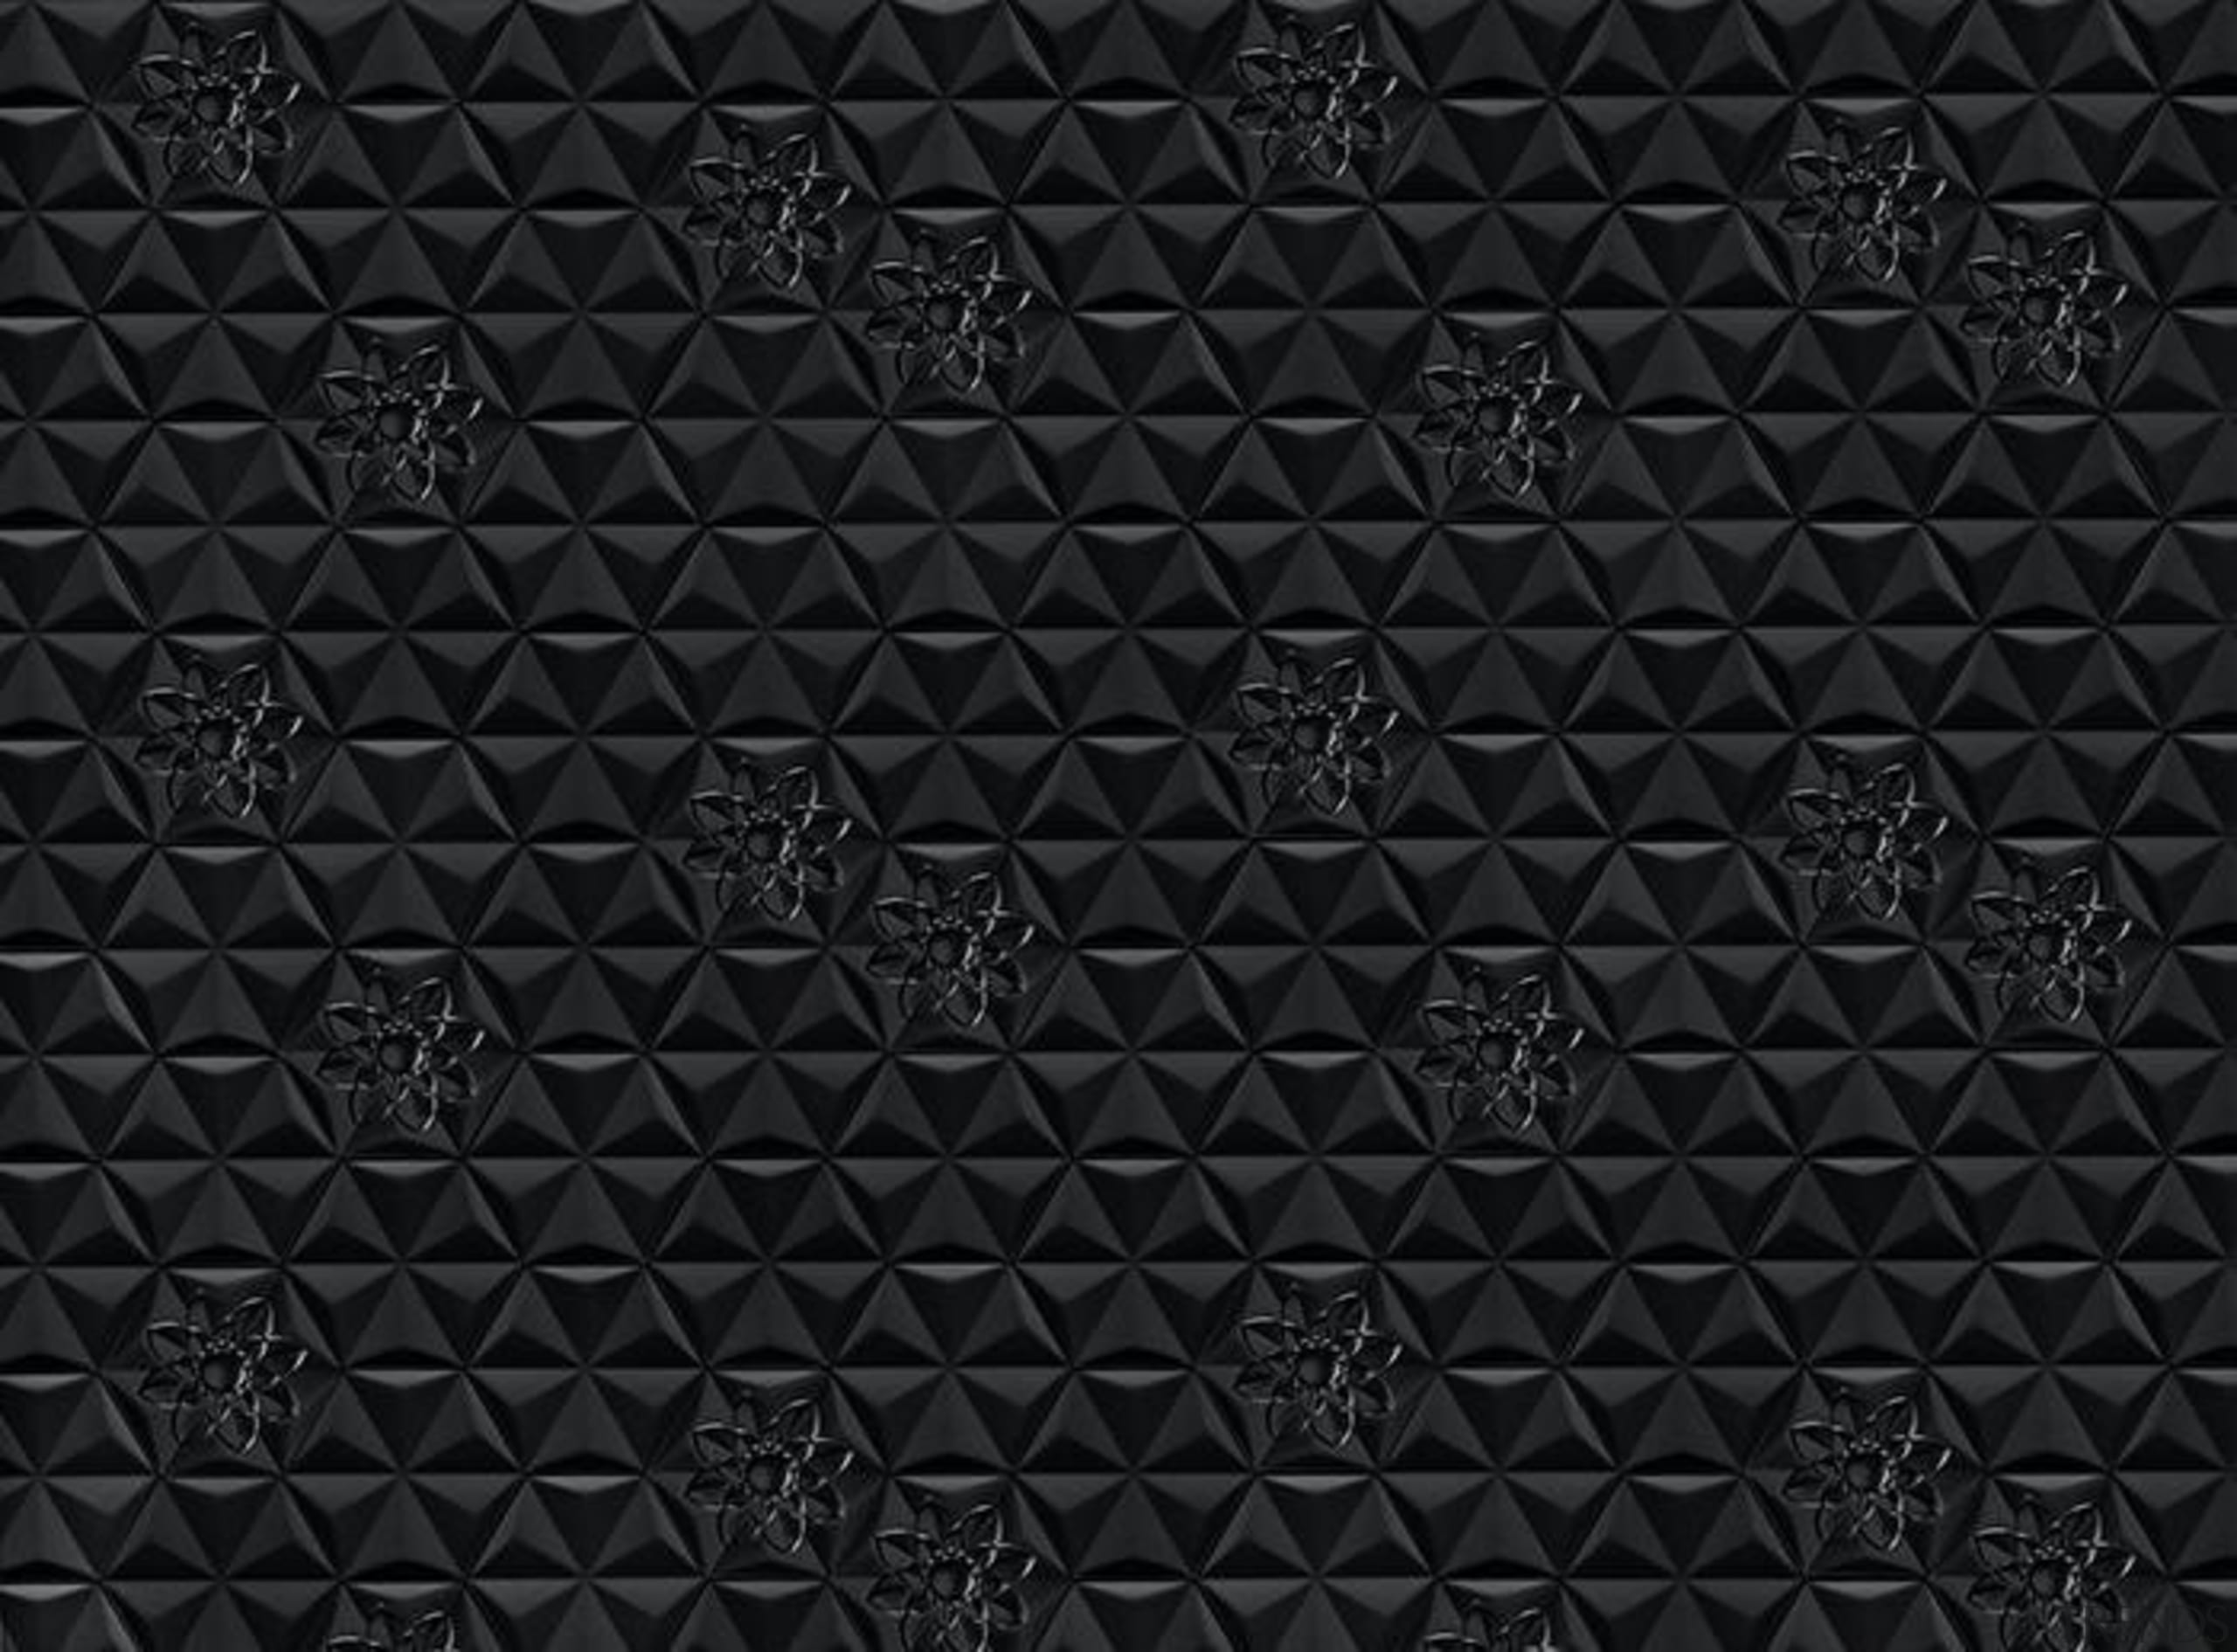 Different designs can be achieved by mixing and black, black and white, computer wallpaper, design, line, monochrome, monochrome photography, pattern, symmetry, texture, black